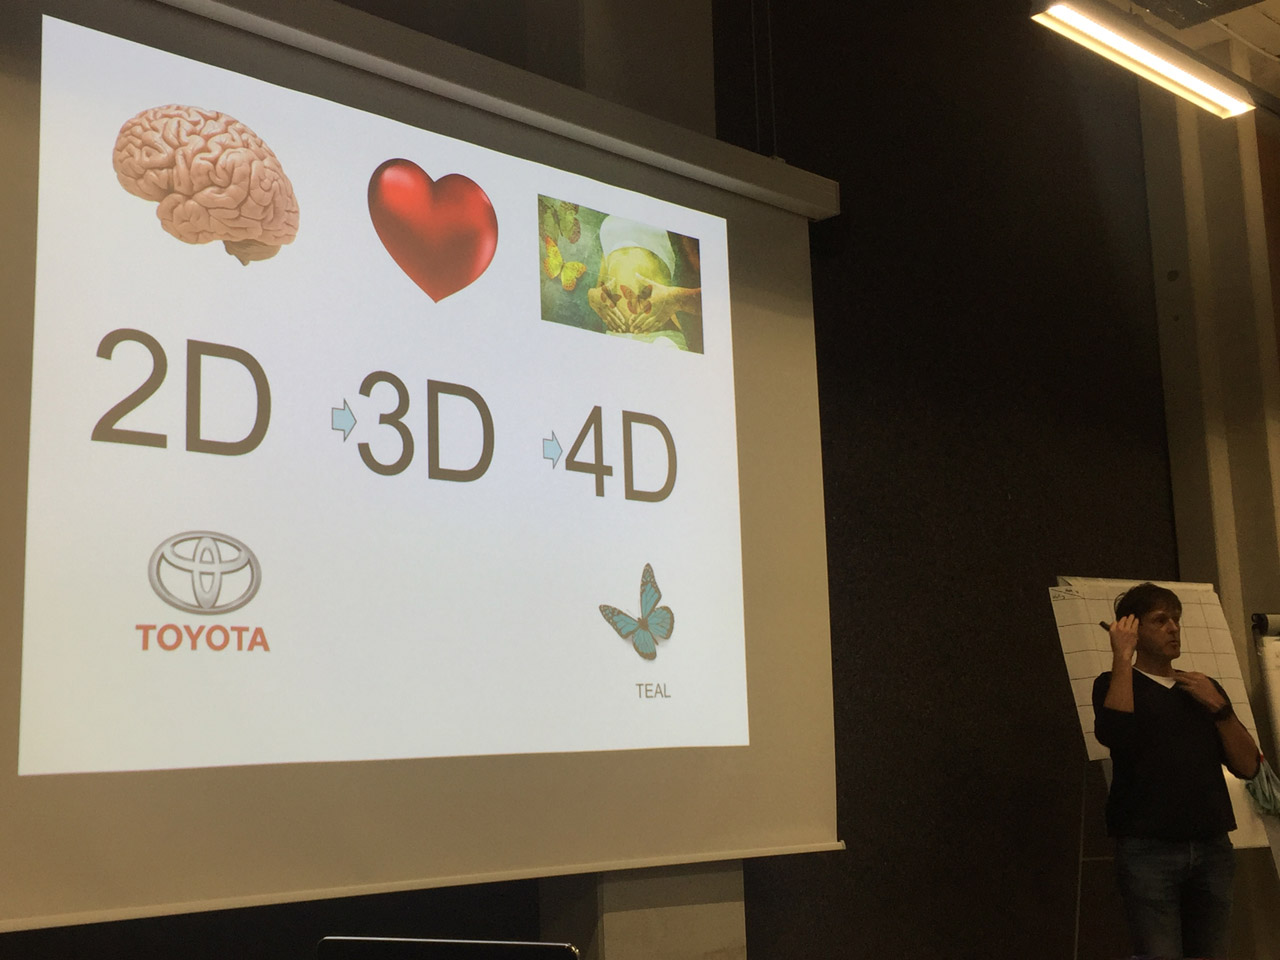 Jim Lippens over 2D, 3D en 4D Lean